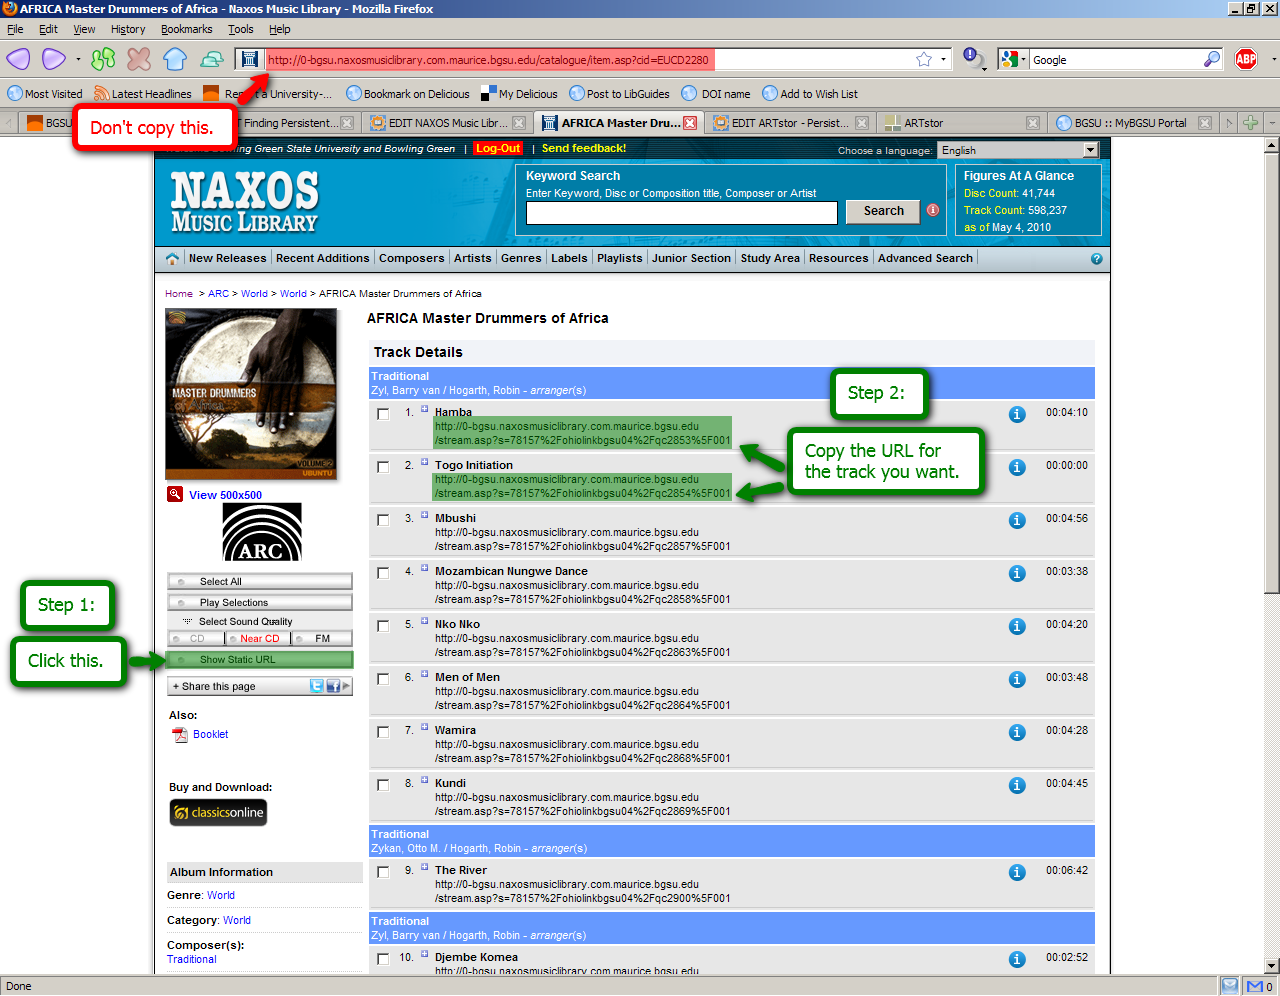 NAXOS Music Library screenshot highlighting the persistent link: Don't copy this (address bar), Click this (show static URL), Copy the URL for the track you want.